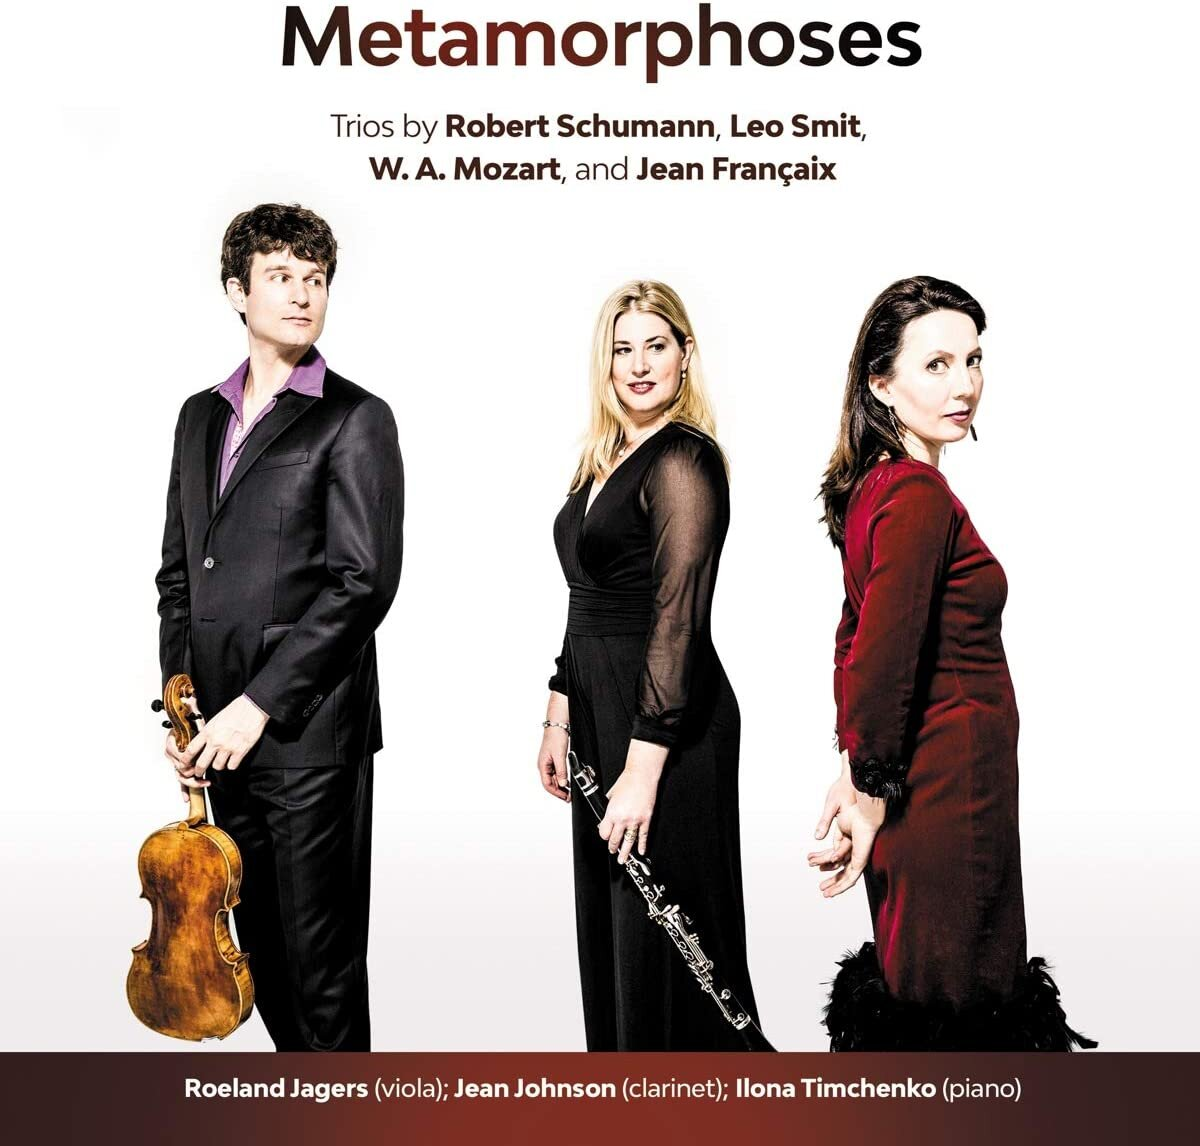 Metamorphoses Trio Classical Musicians